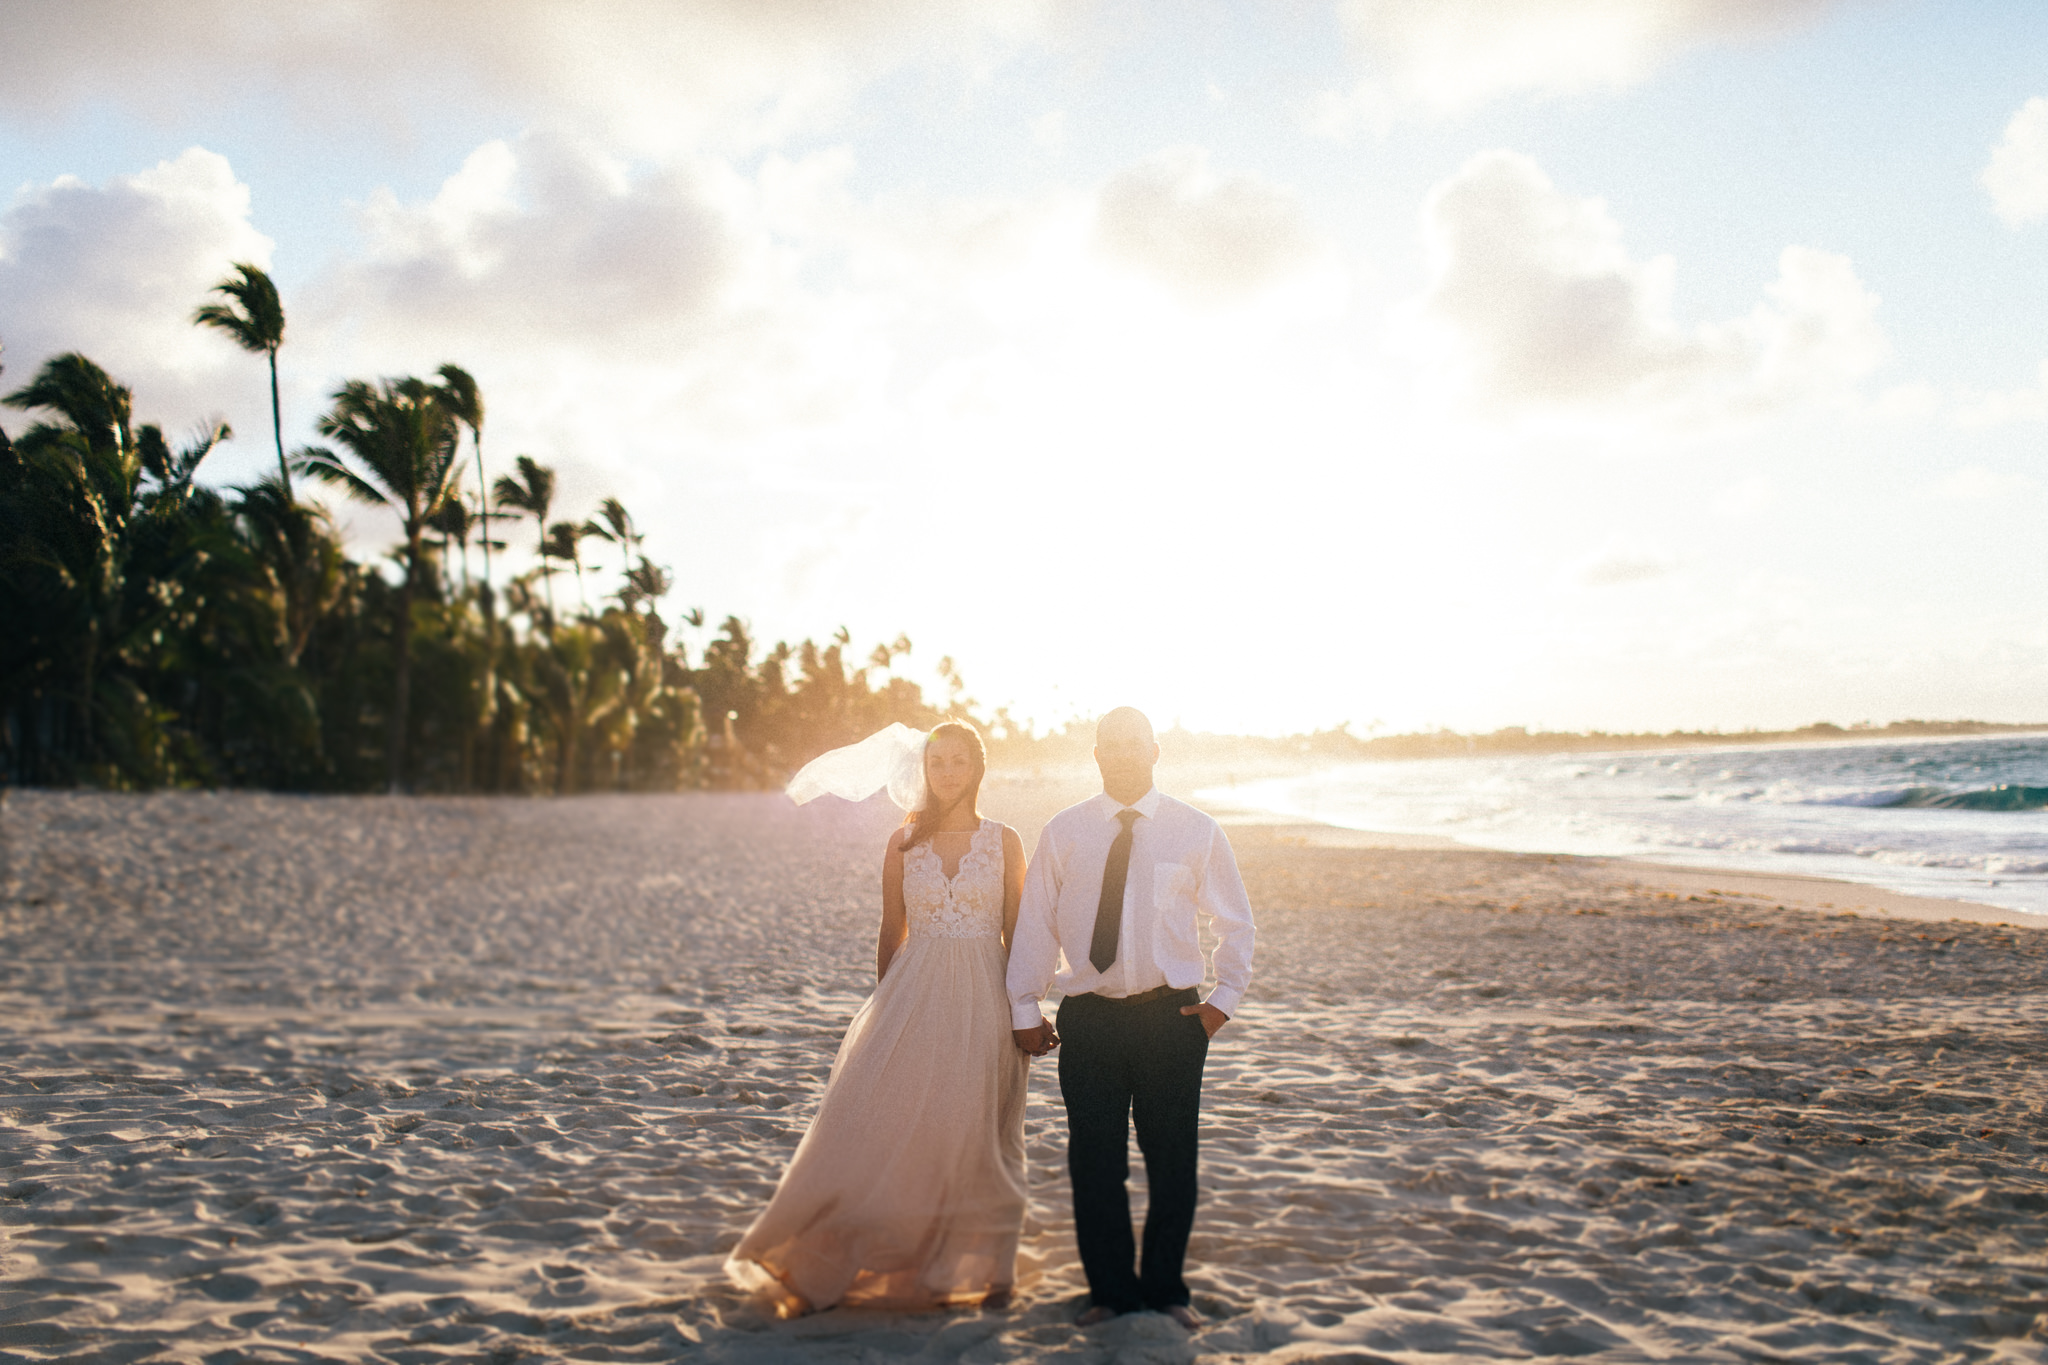 Awesome Royalton Punta Cana Wedding #1: Royalton-punta-cana-wedding-101.jpg